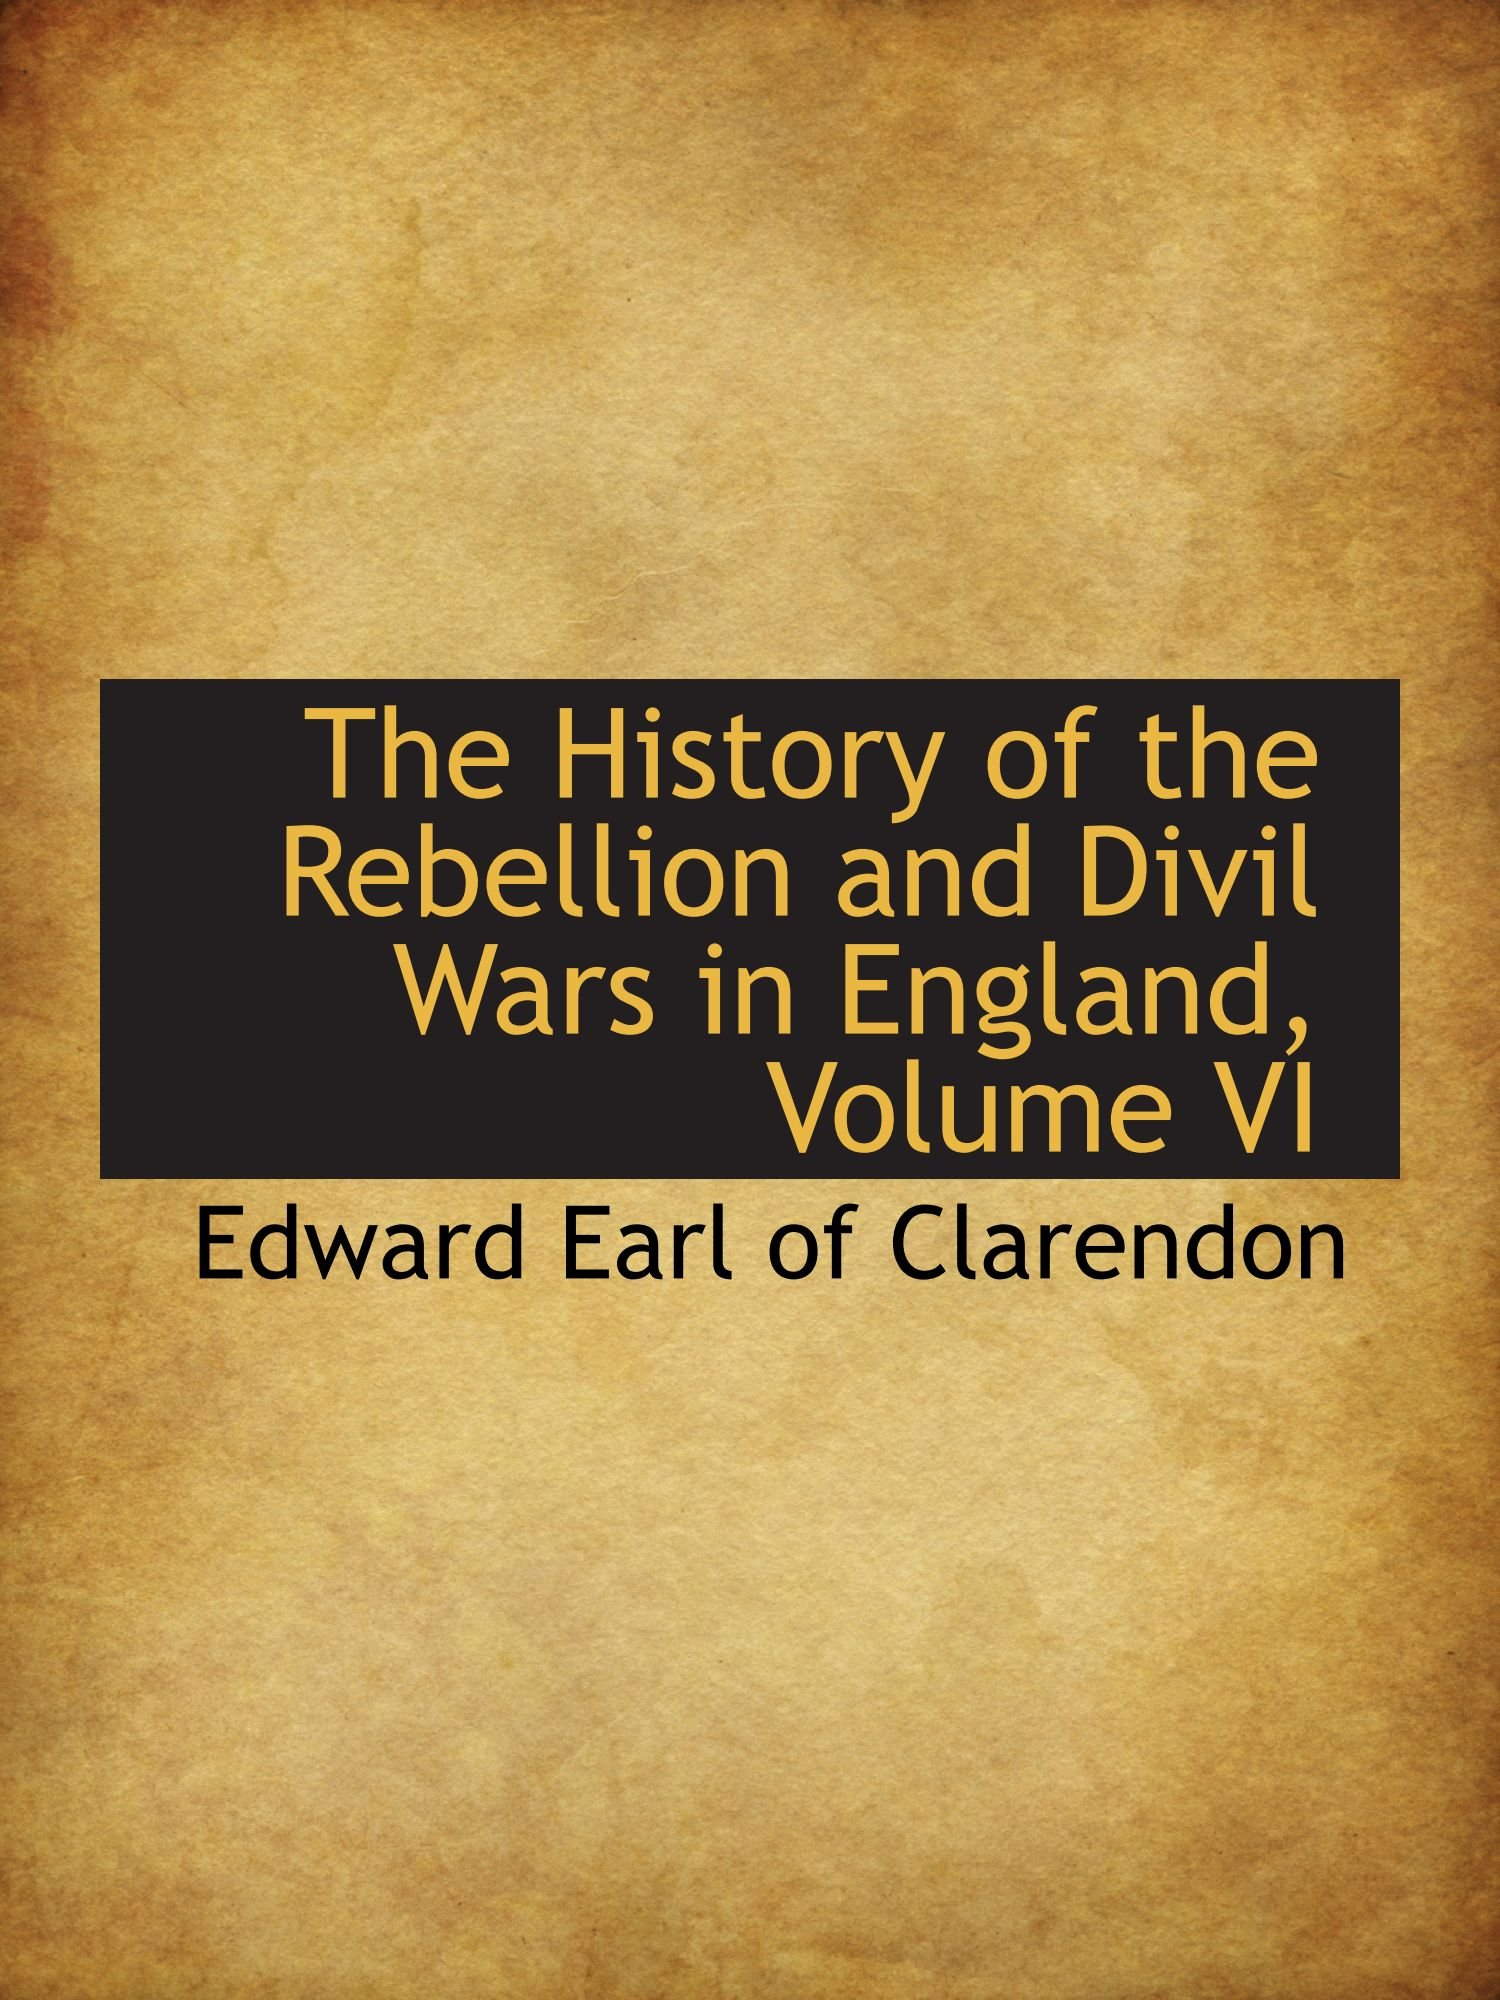 The History of the Rebellion and Divil Wars in England, Volume VI PDF